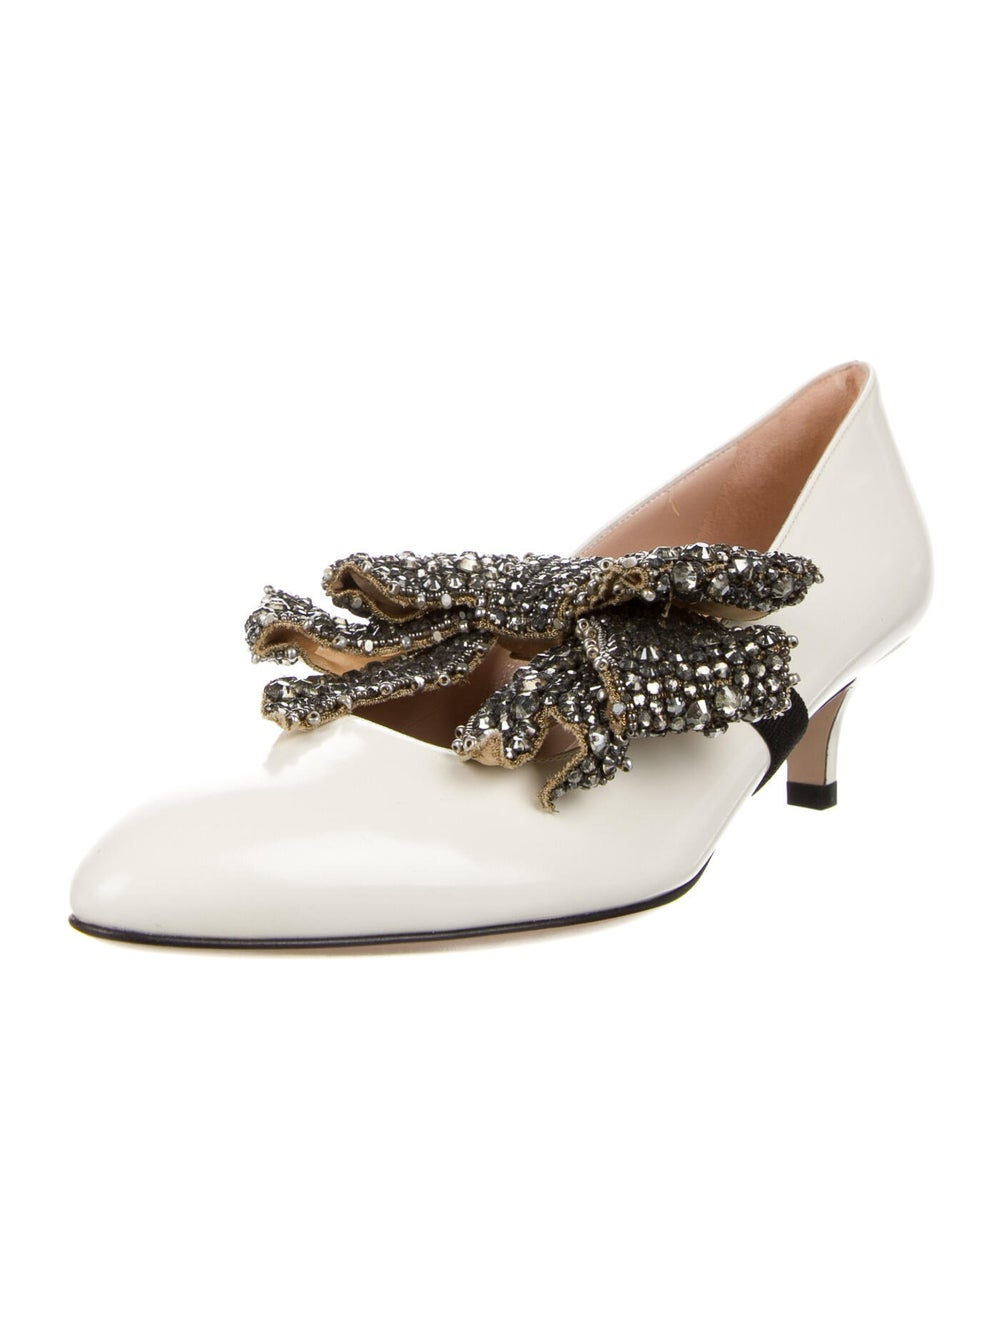 Gucci Leather Crystal Embellishments Pumps - image 2